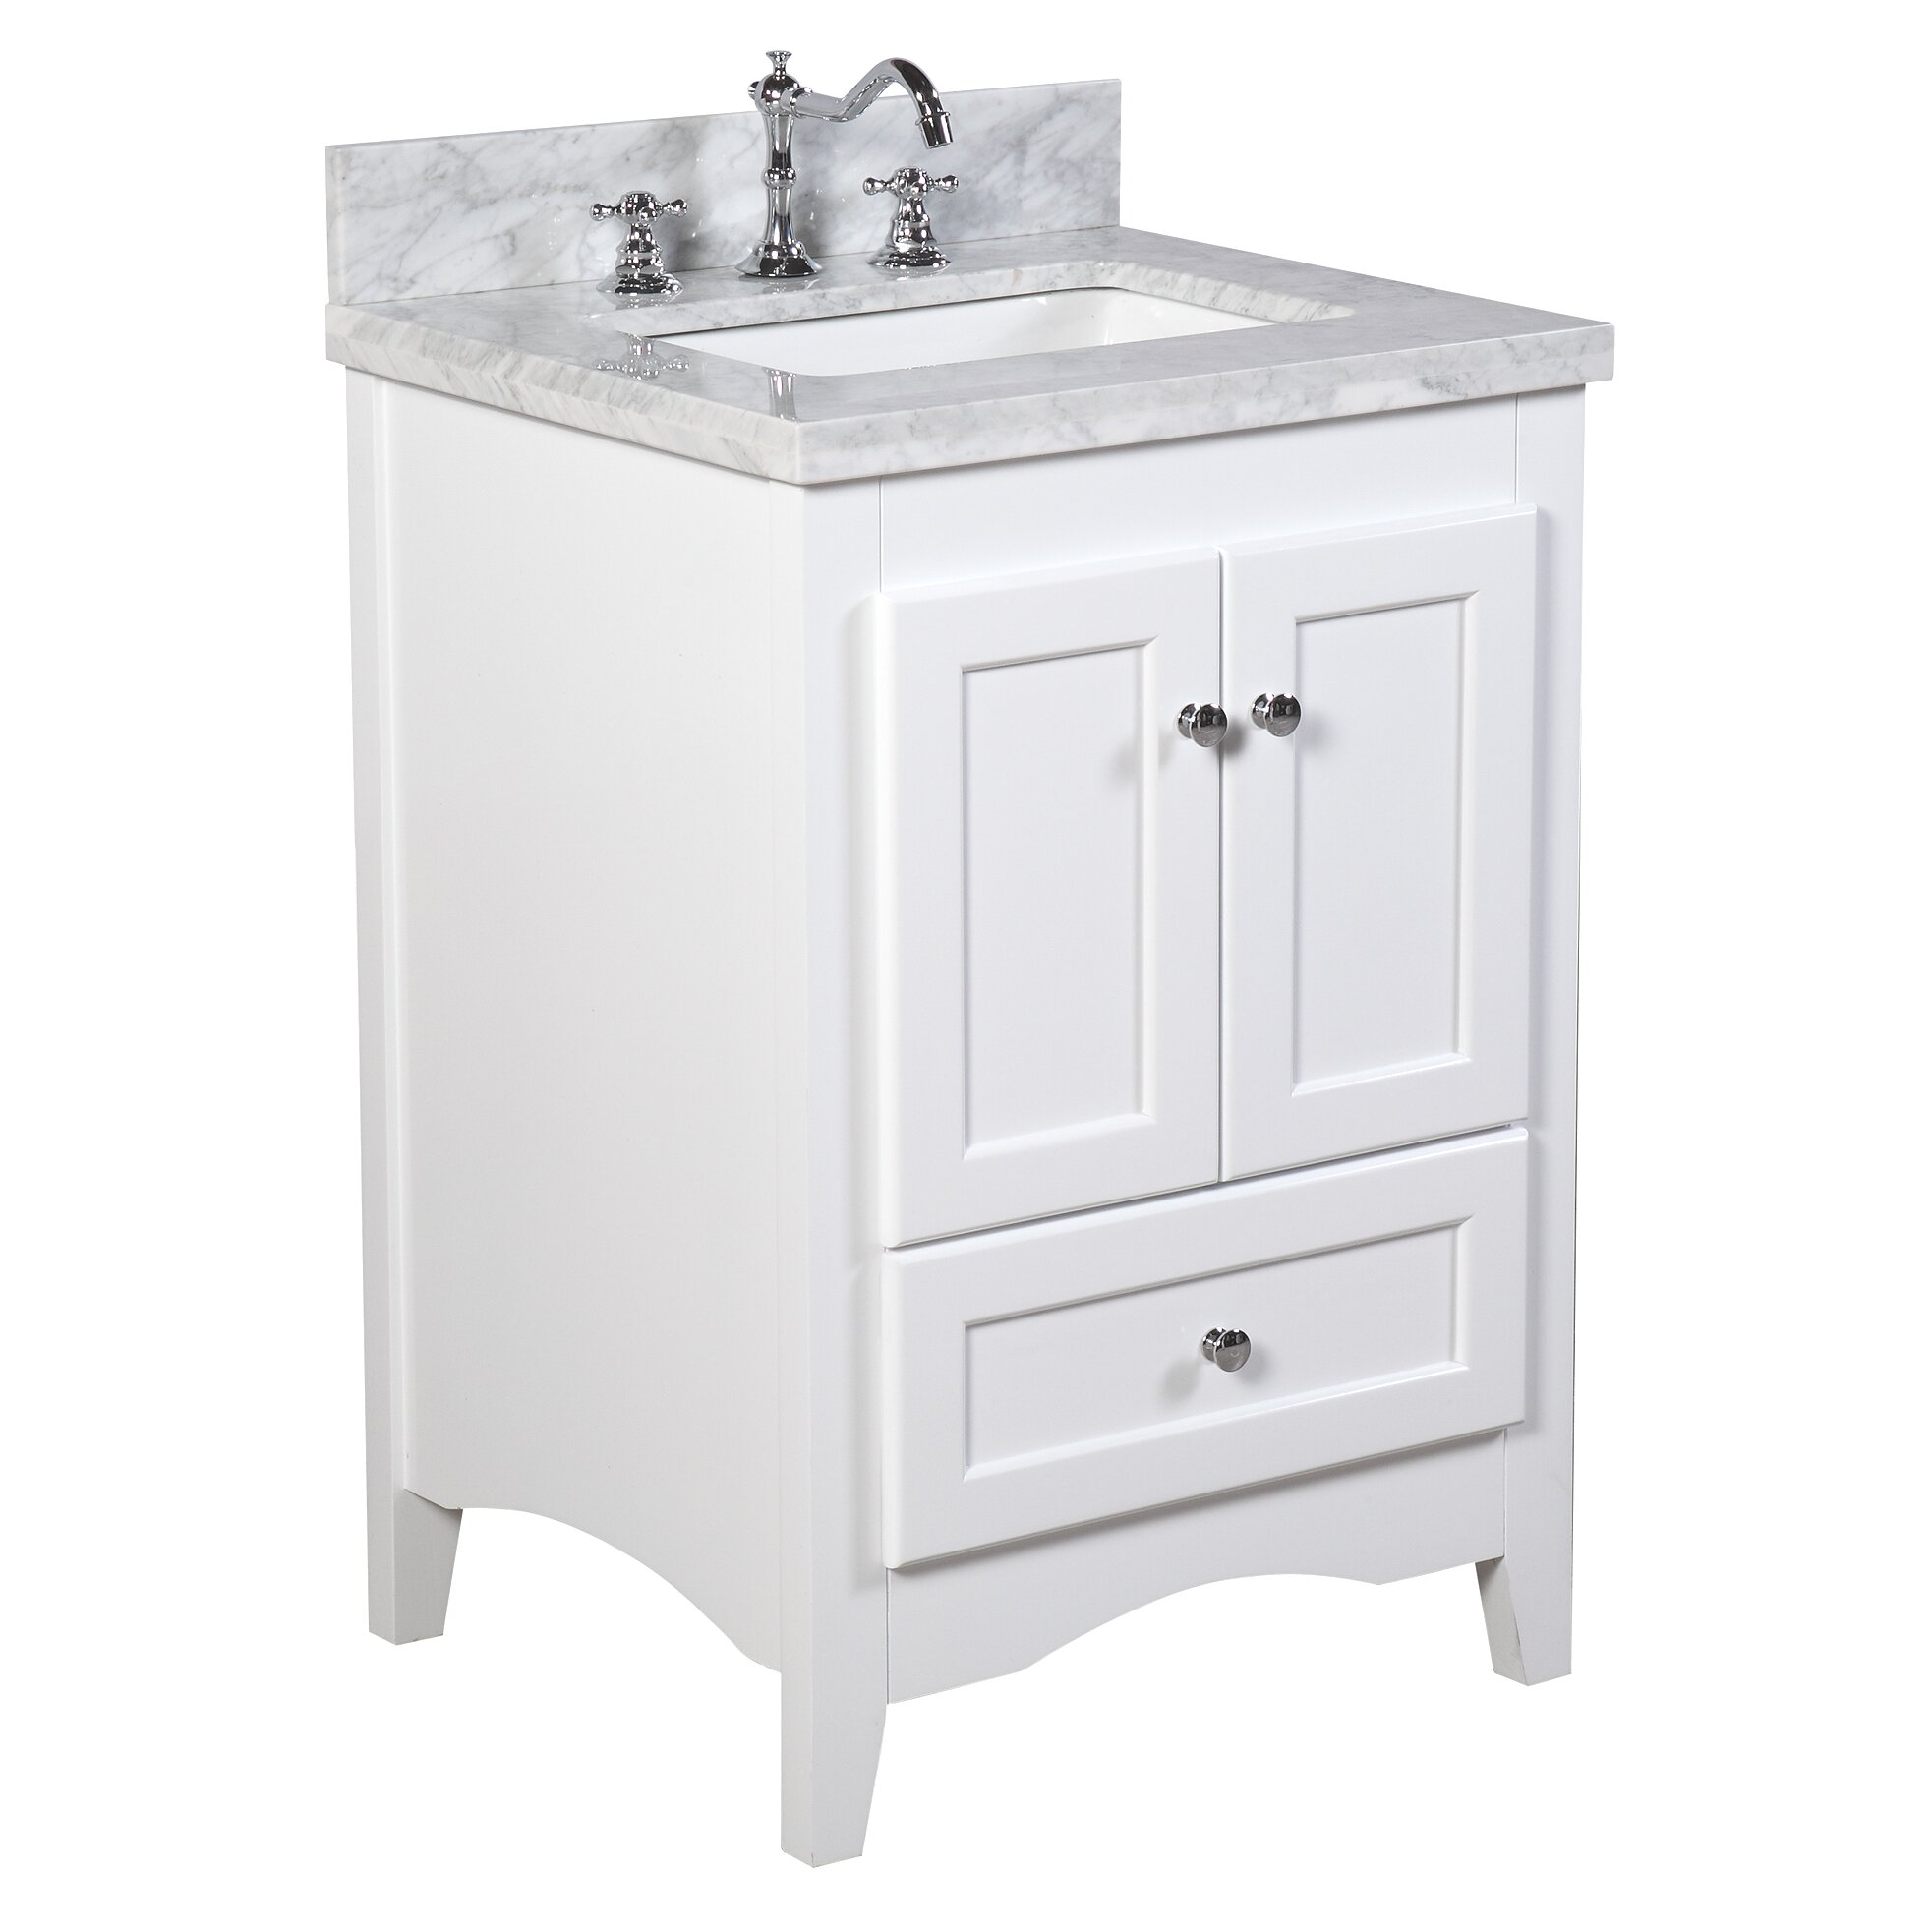 24 bathroom vanity with drawers my web value kitchen bath collection abbey 24 single bathroom vanity set